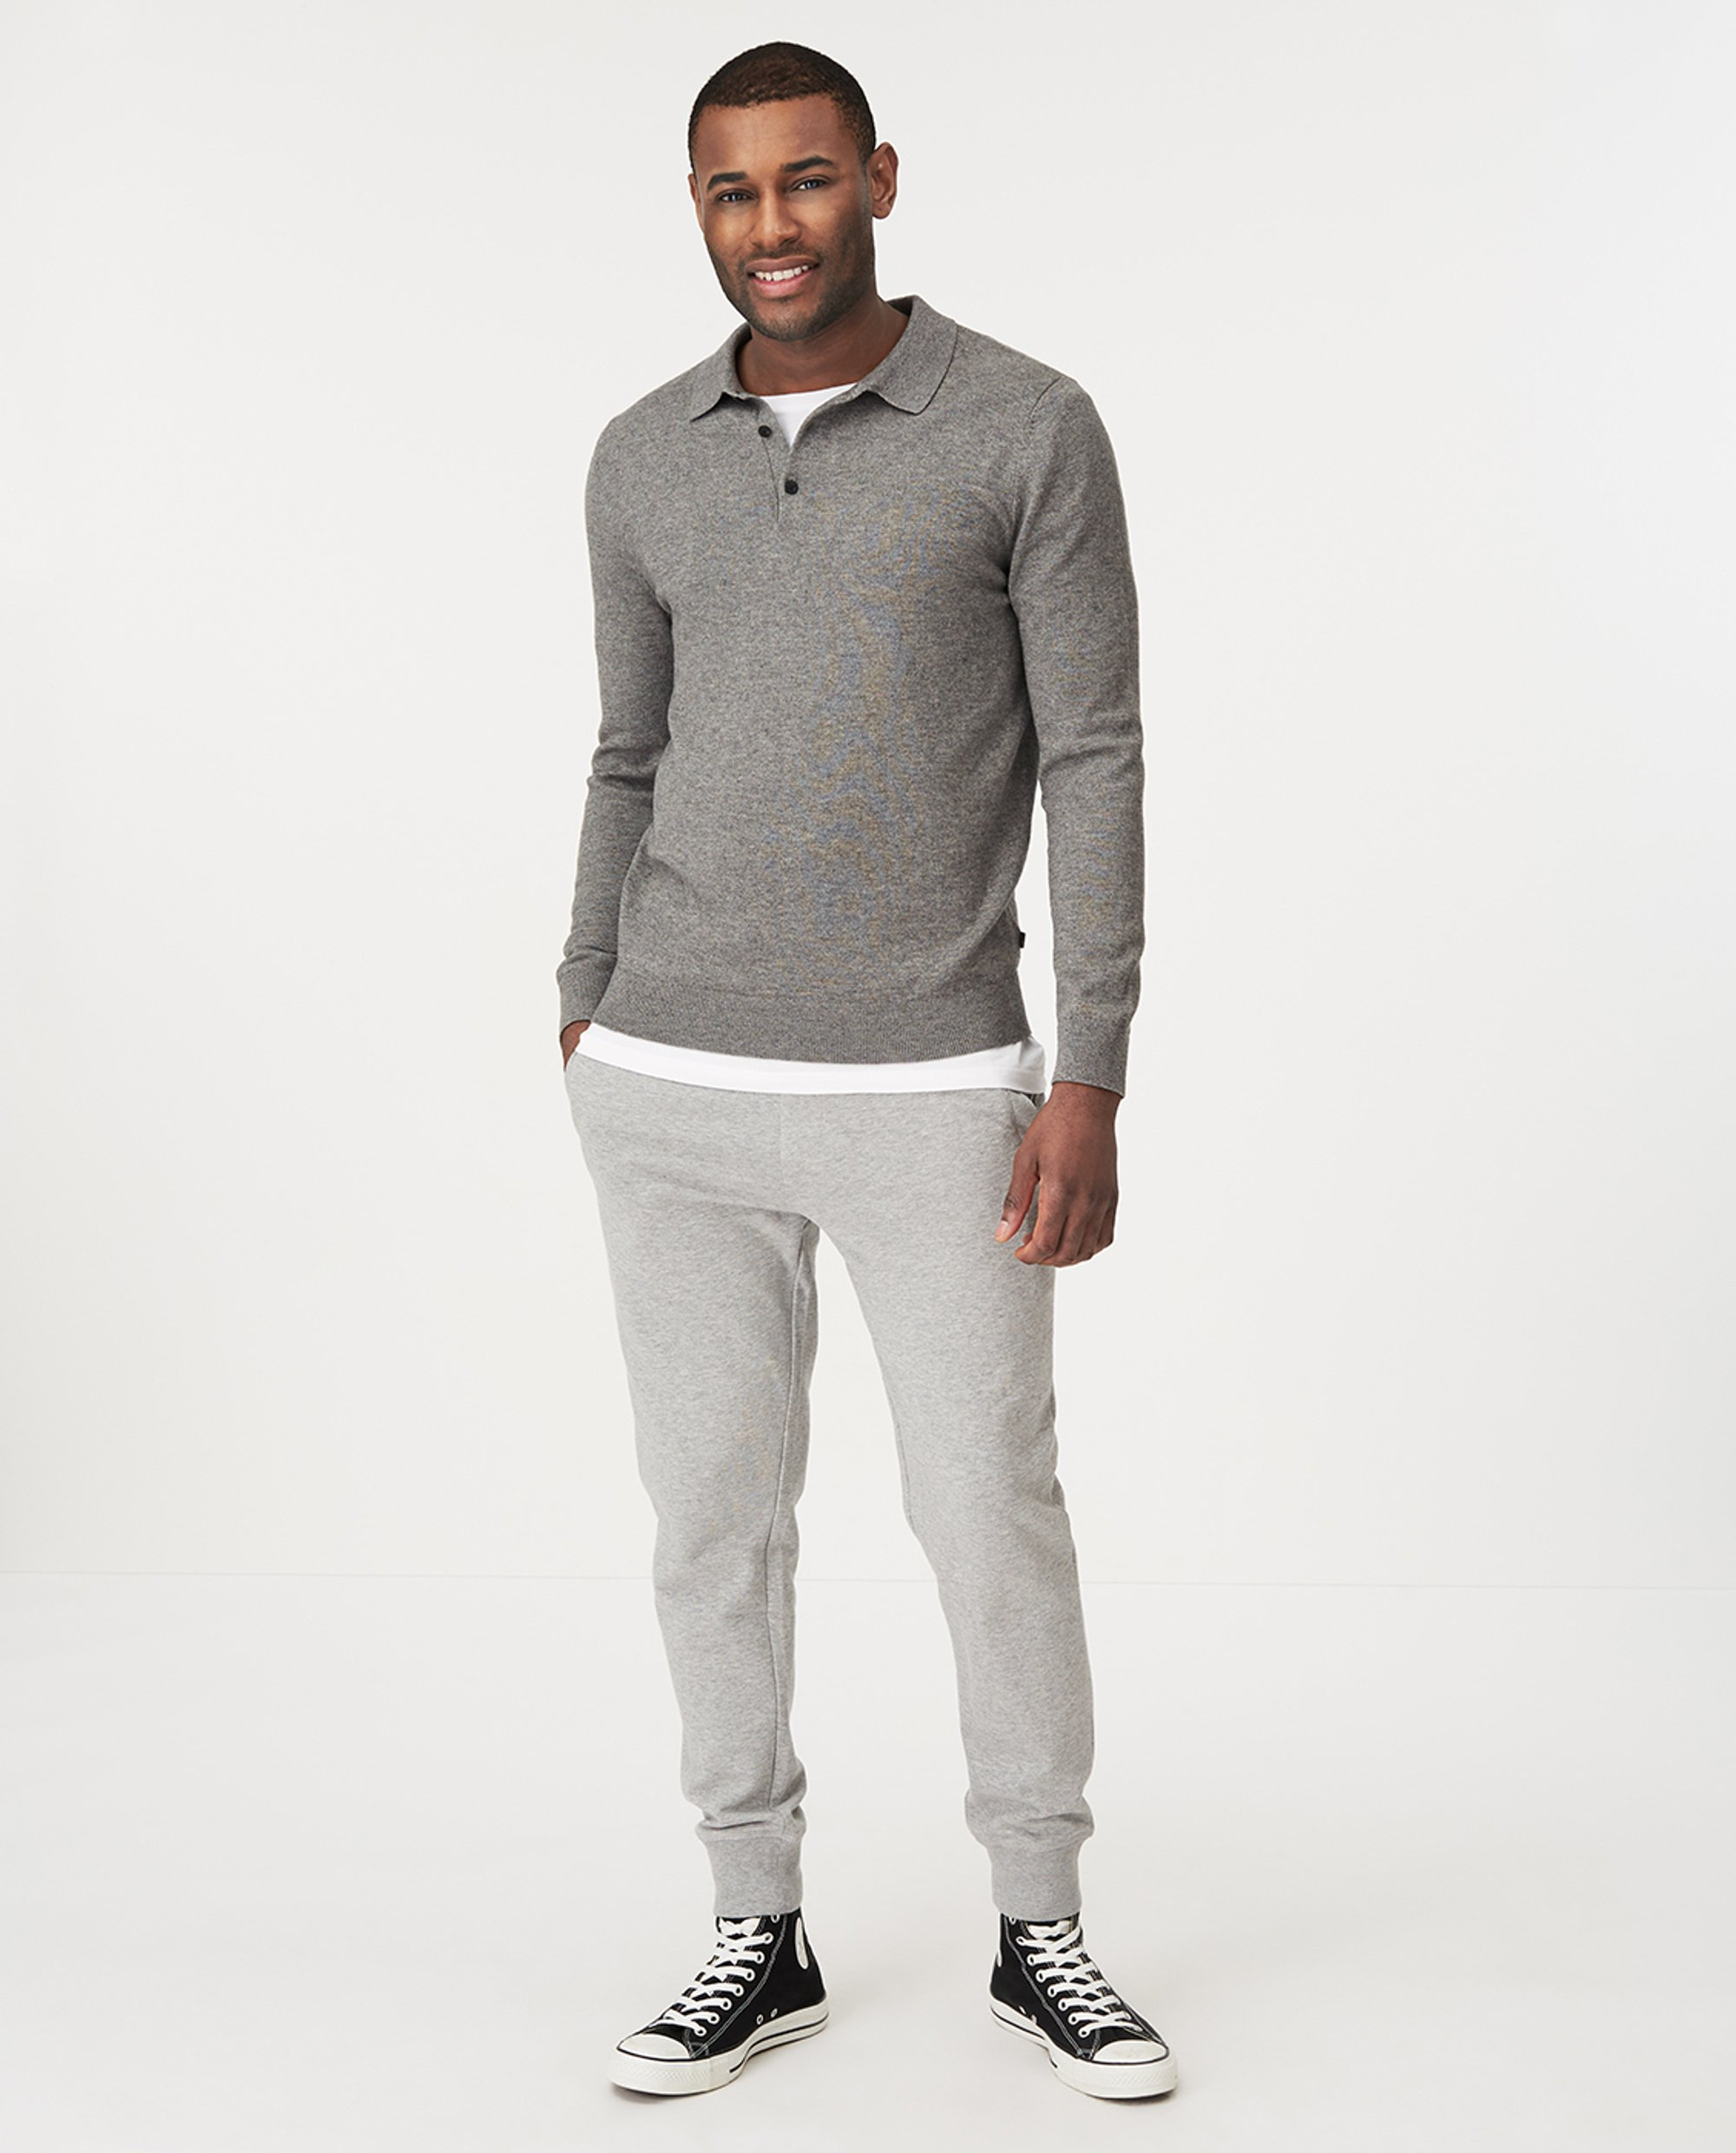 Riley Knitted Long Sleeve Cotton/Wool Polo, Gray Melange